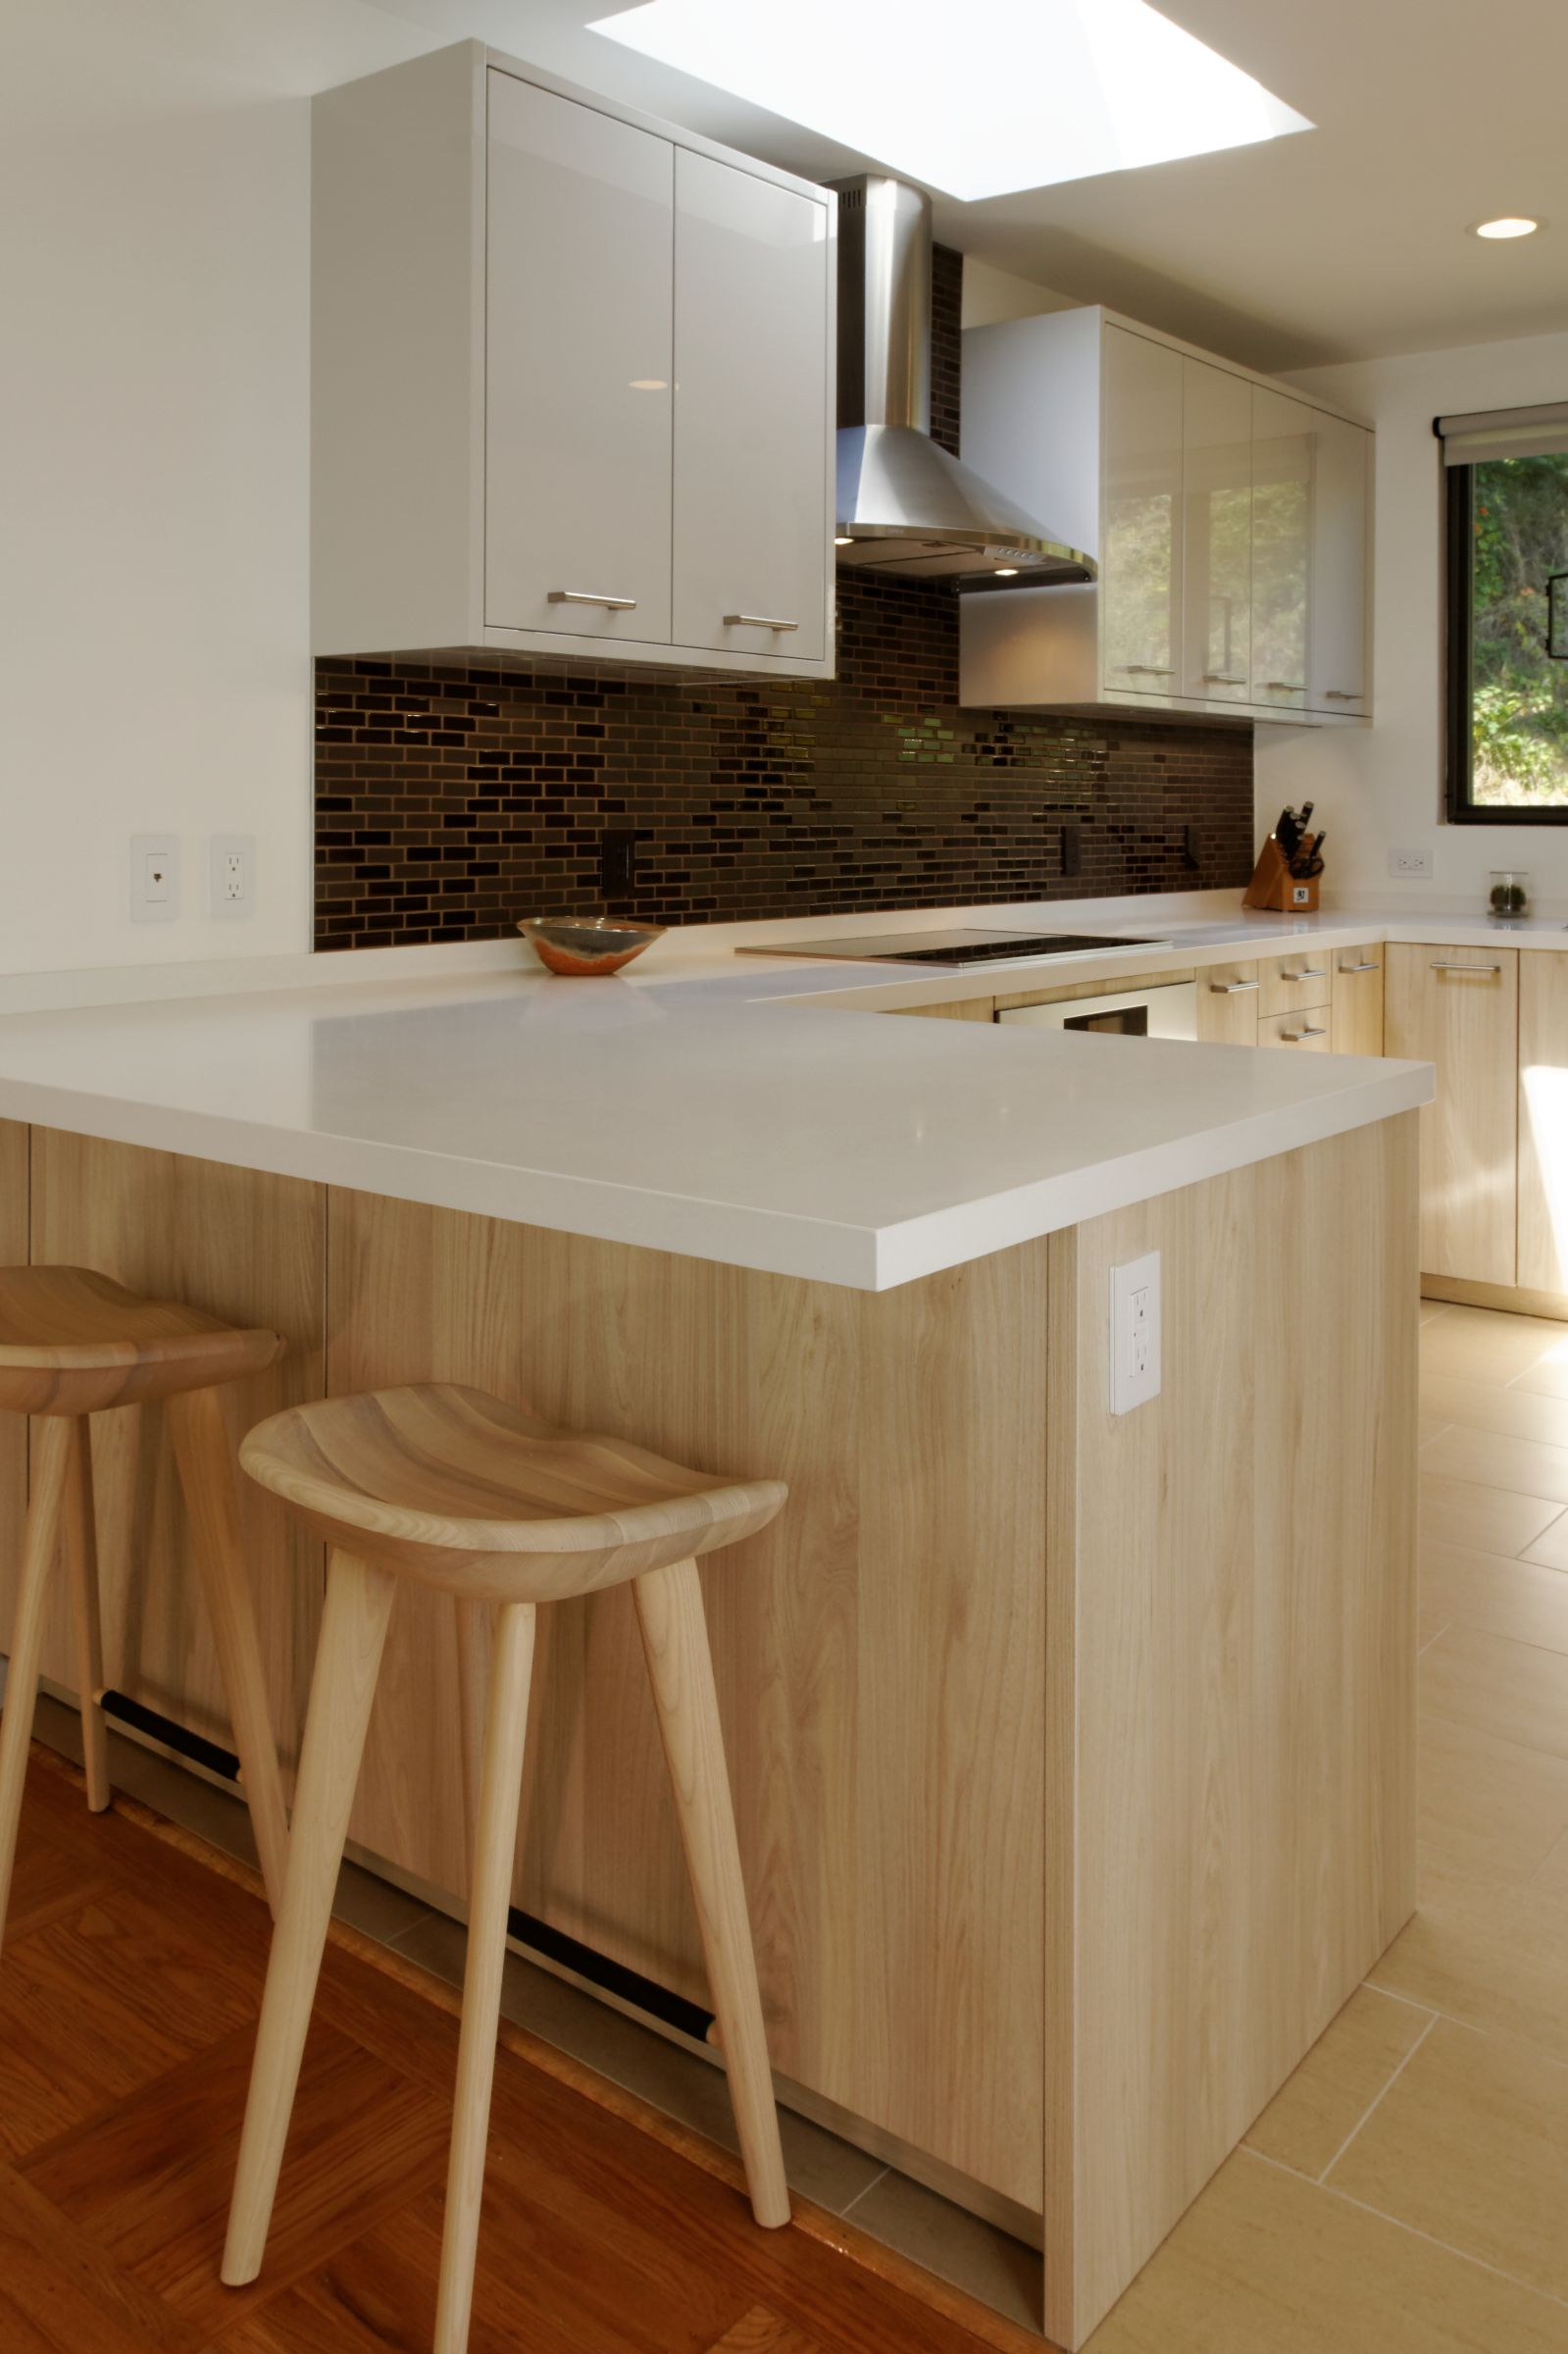 By keeping the bar area at counter-height, the area feels even larger.